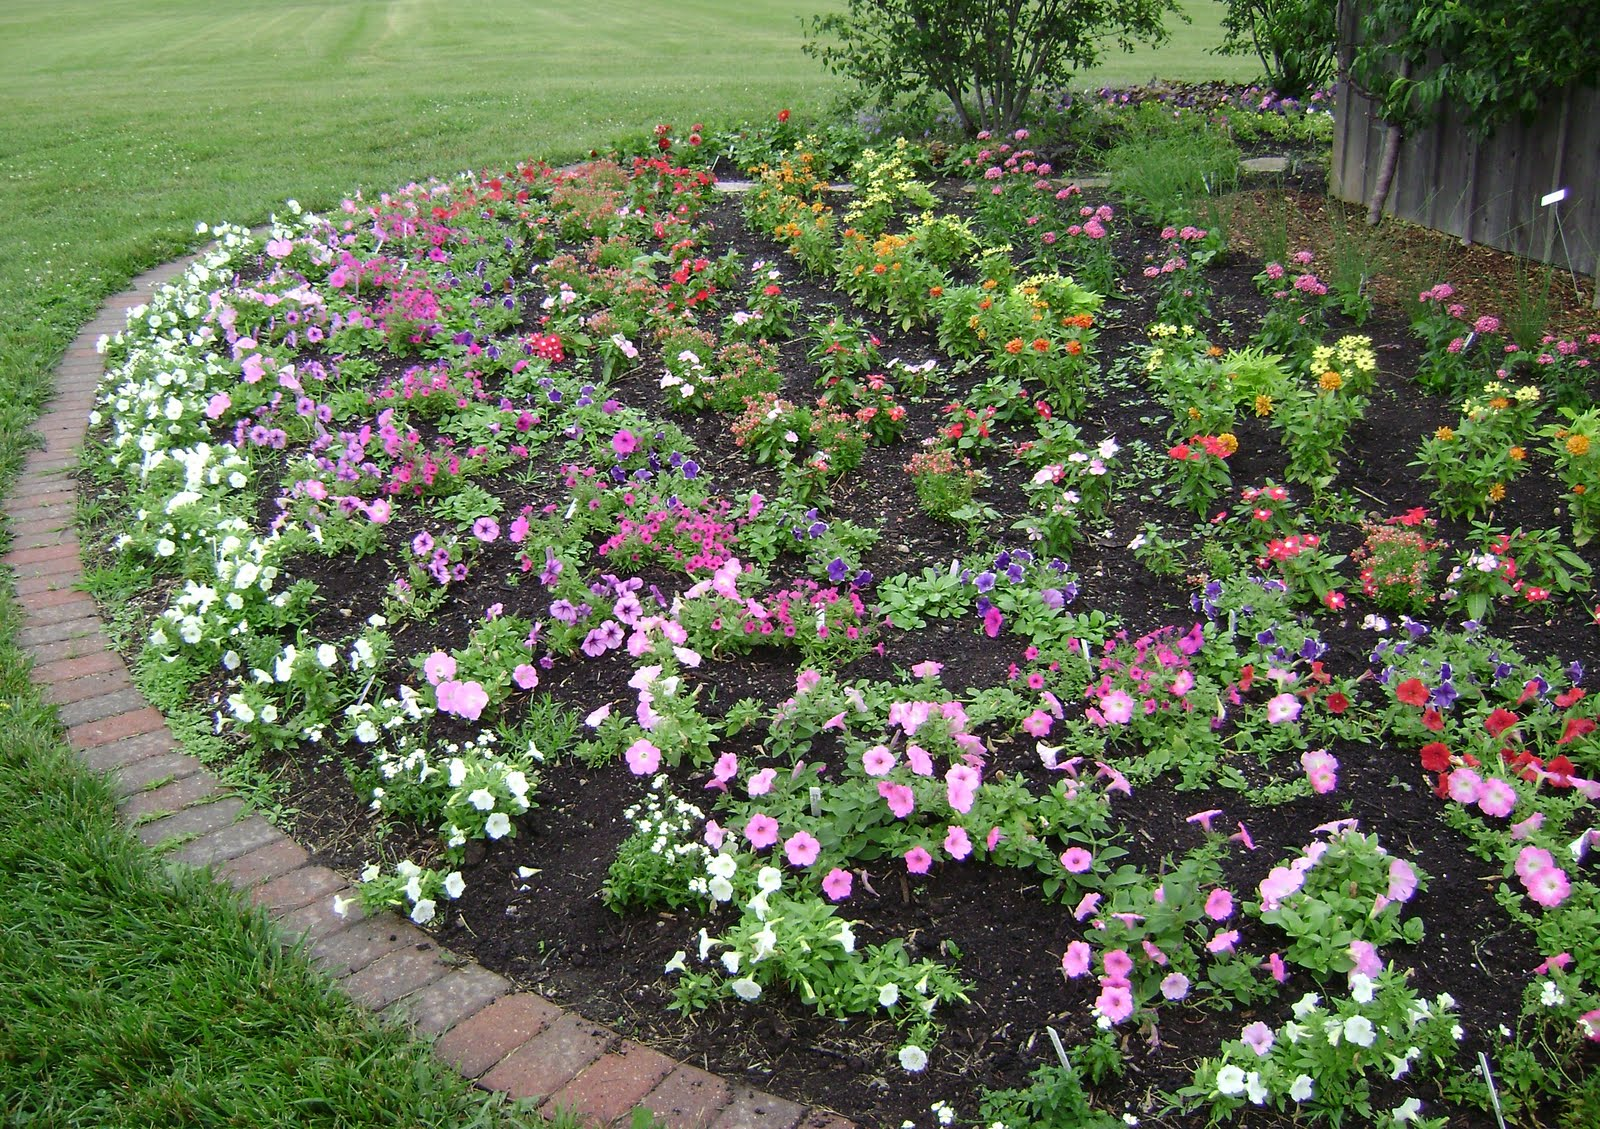 Landscaping Ideas Rose Garden : Garden ideas galore in the idea prairie rose s